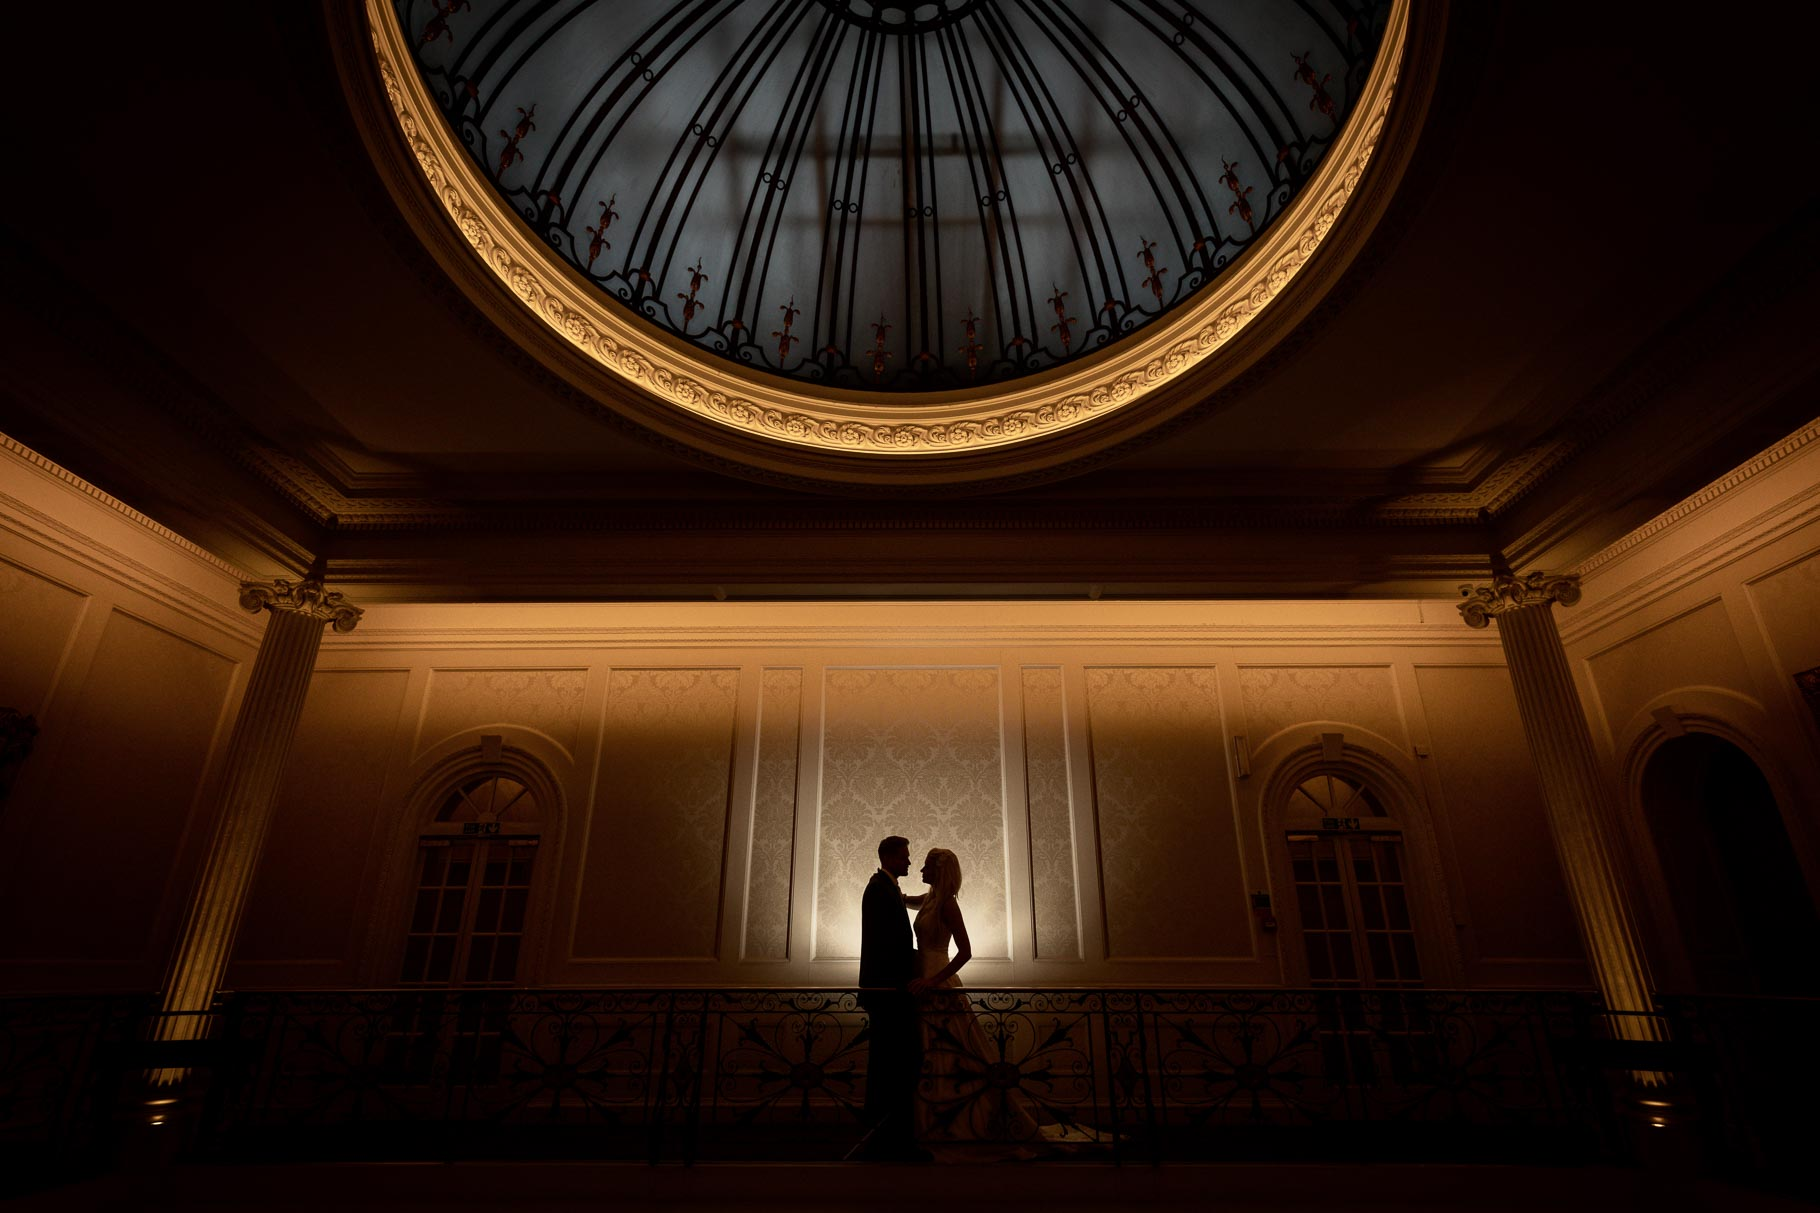 A silhouette portraits of a bride and groom